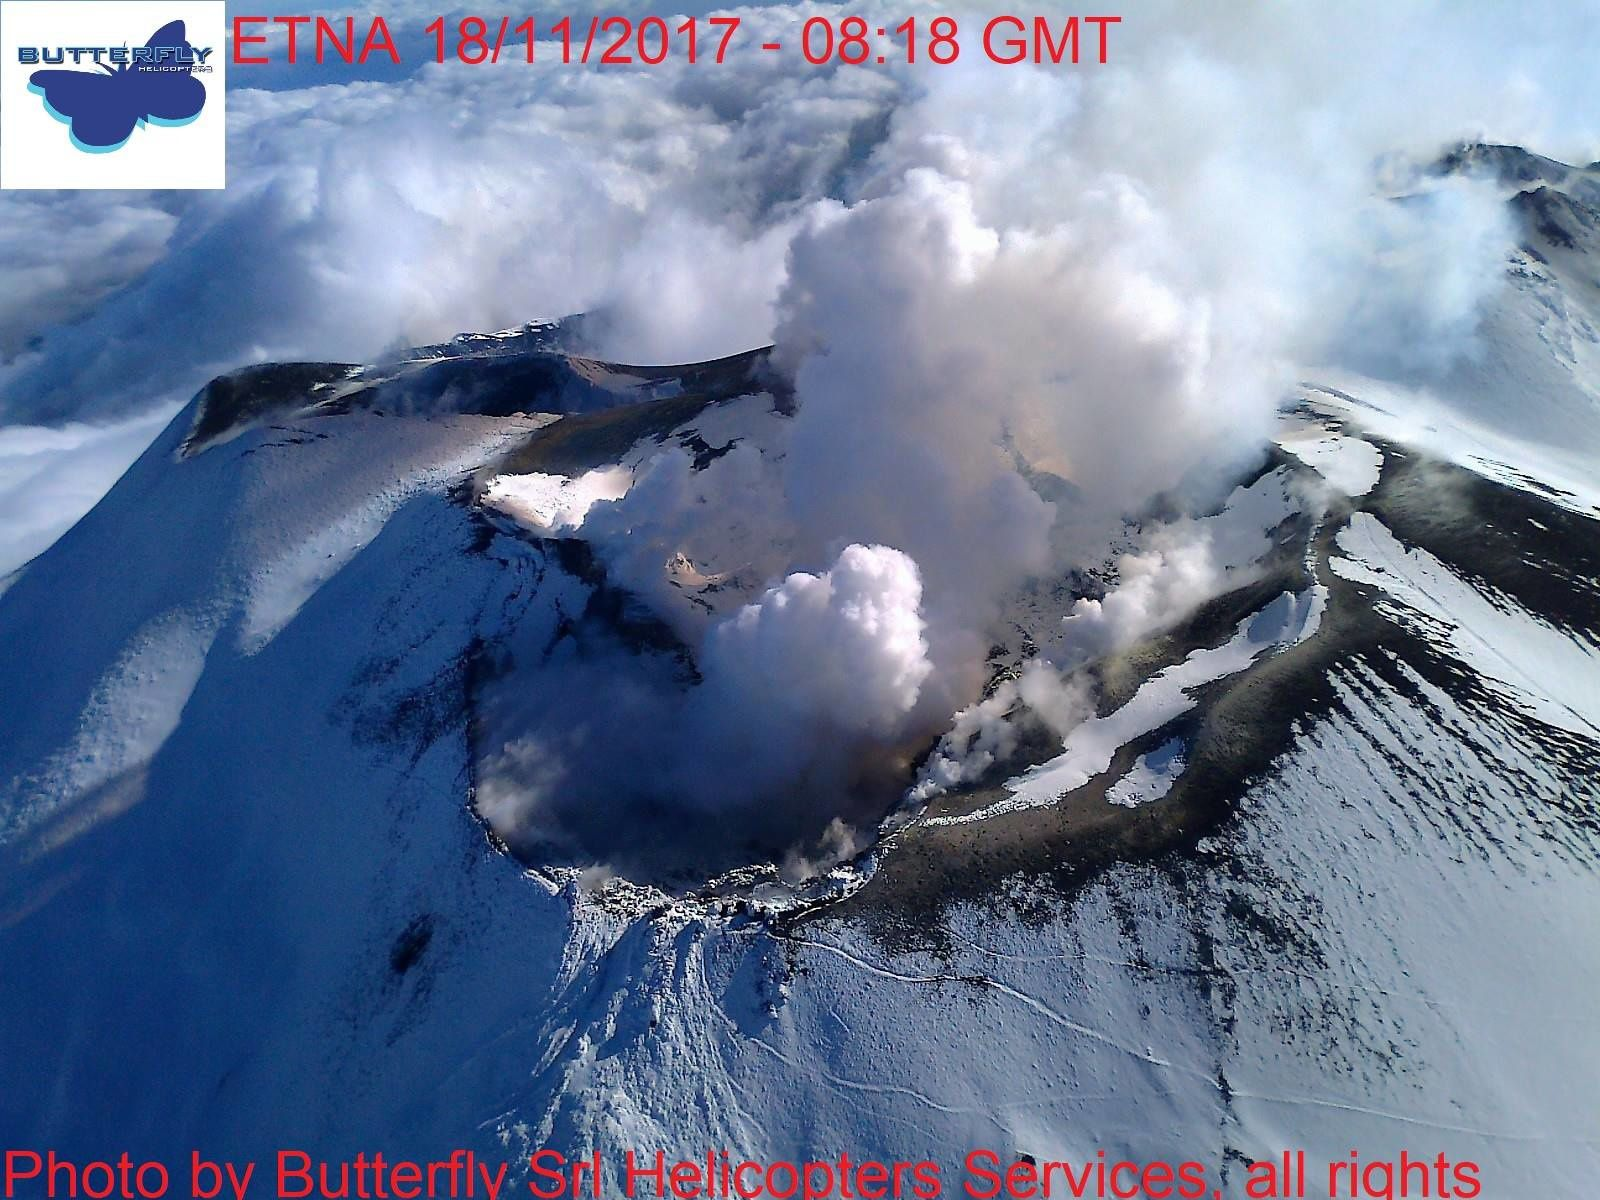 Etna - top degassing 18.11.2017 / 8:18 GMT - photo © Joseph Nasi / Butterfly Helicopters